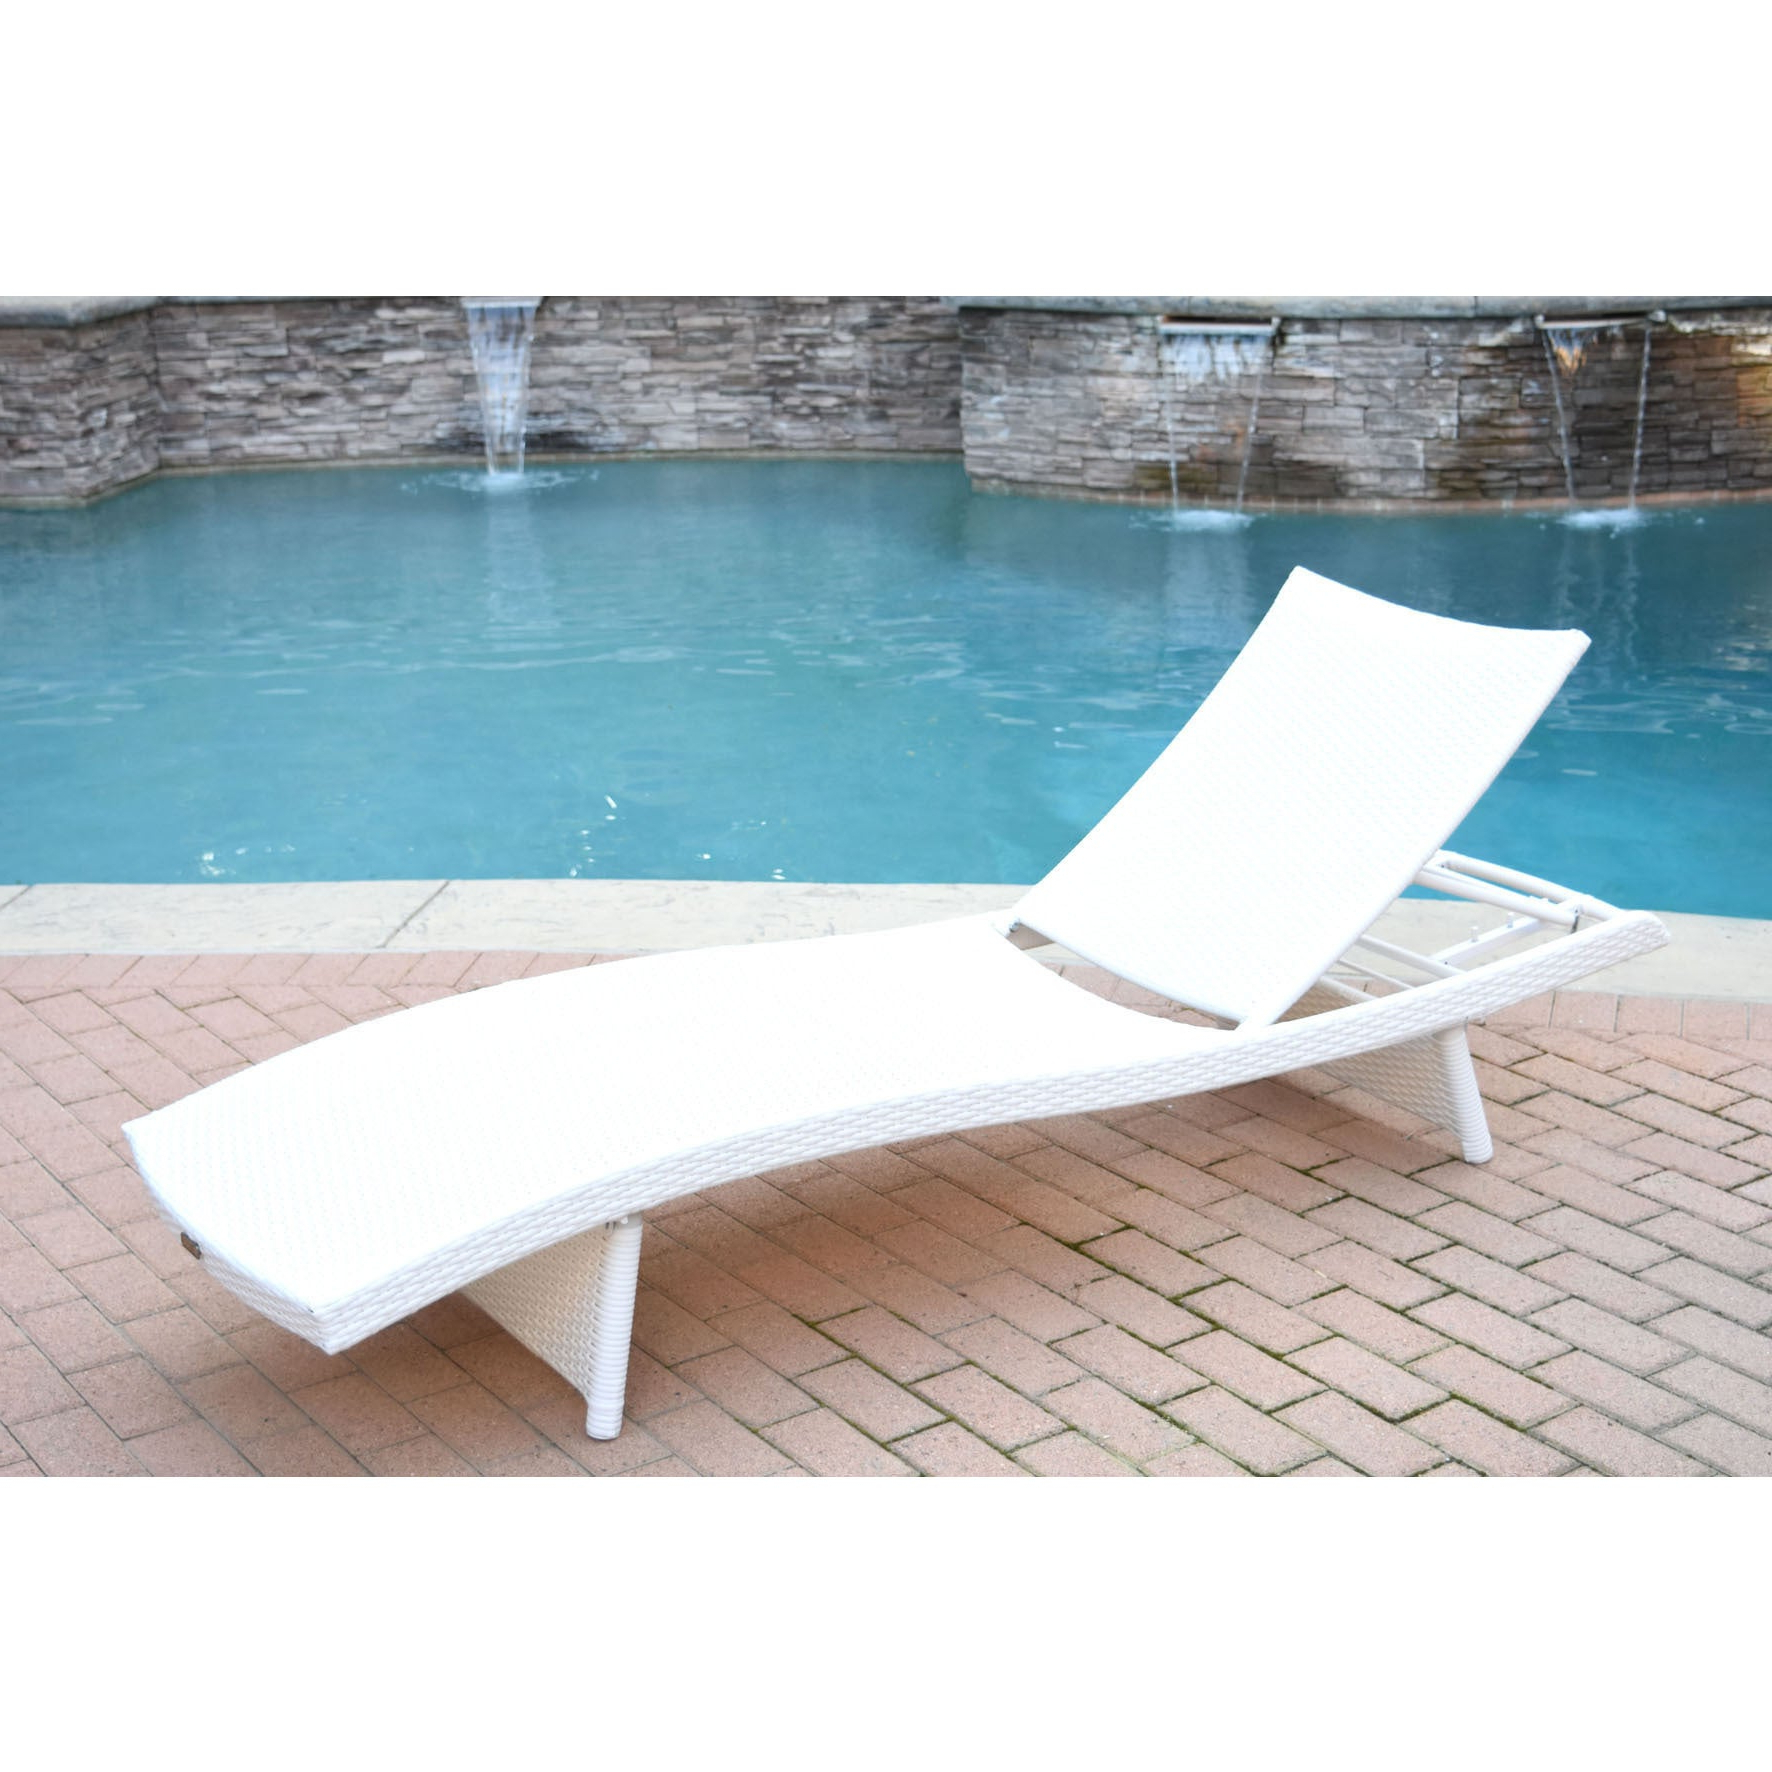 White Wicker Adjustable Chaise Loungers With Cushions Throughout 2019 White Wicker Adjustable Chaise Lounger With Cushions (View 13 of 25)